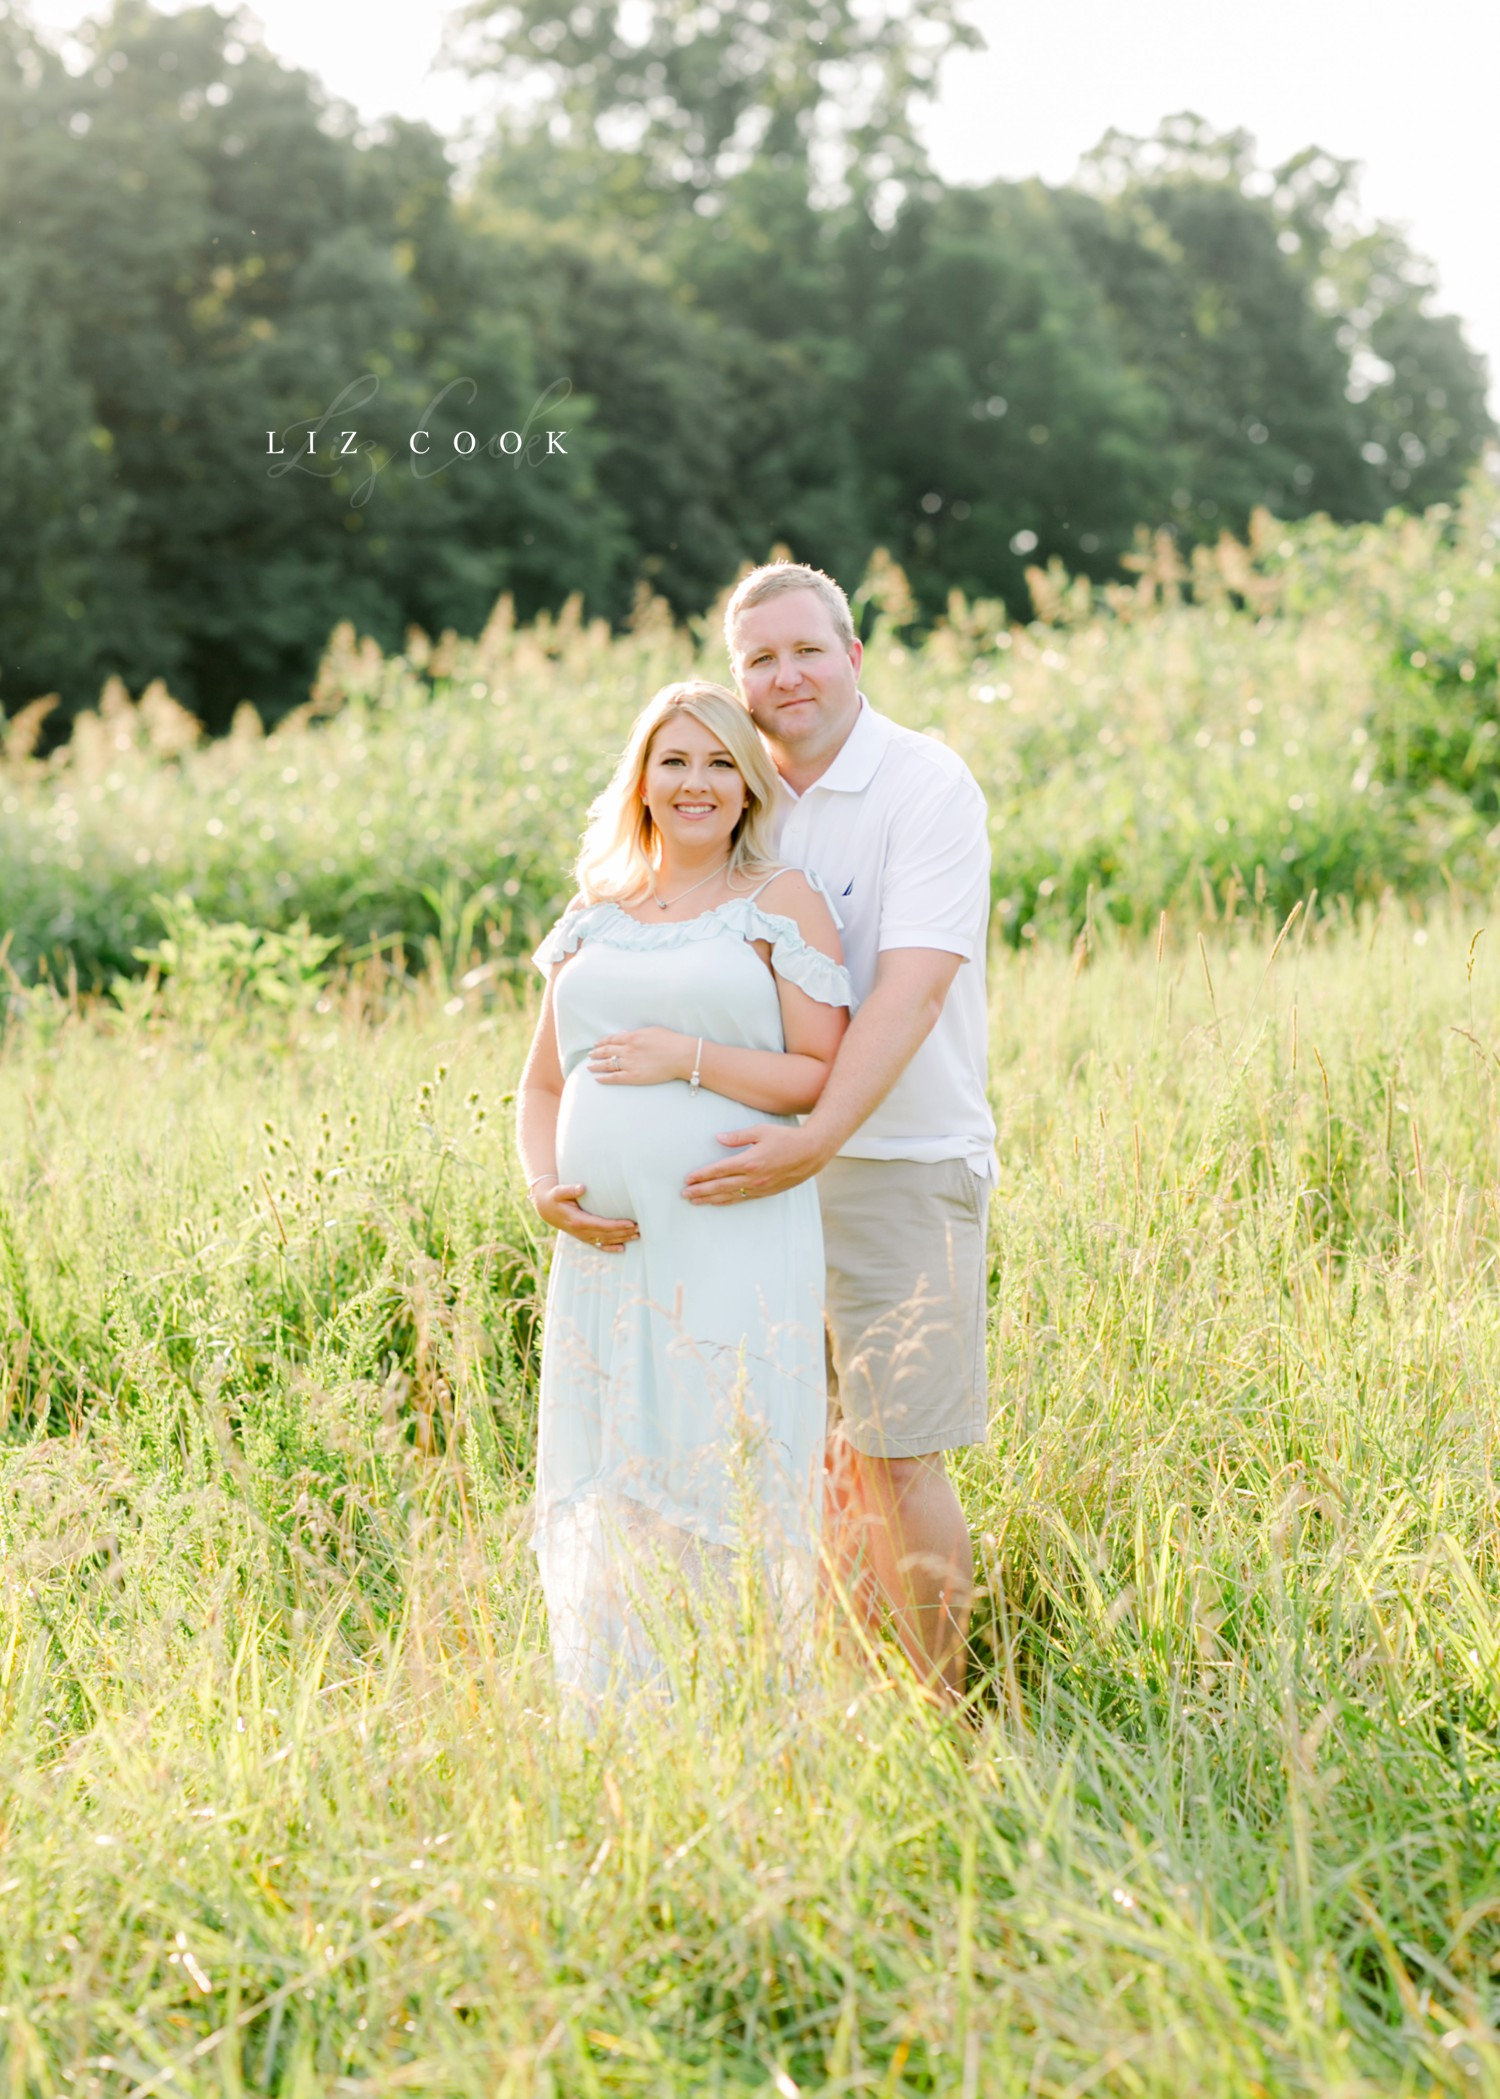 Lynchburg-Virginia-Maternity-Pictures-in-a-Field-Forest-Virginia-Photos-014.JPG